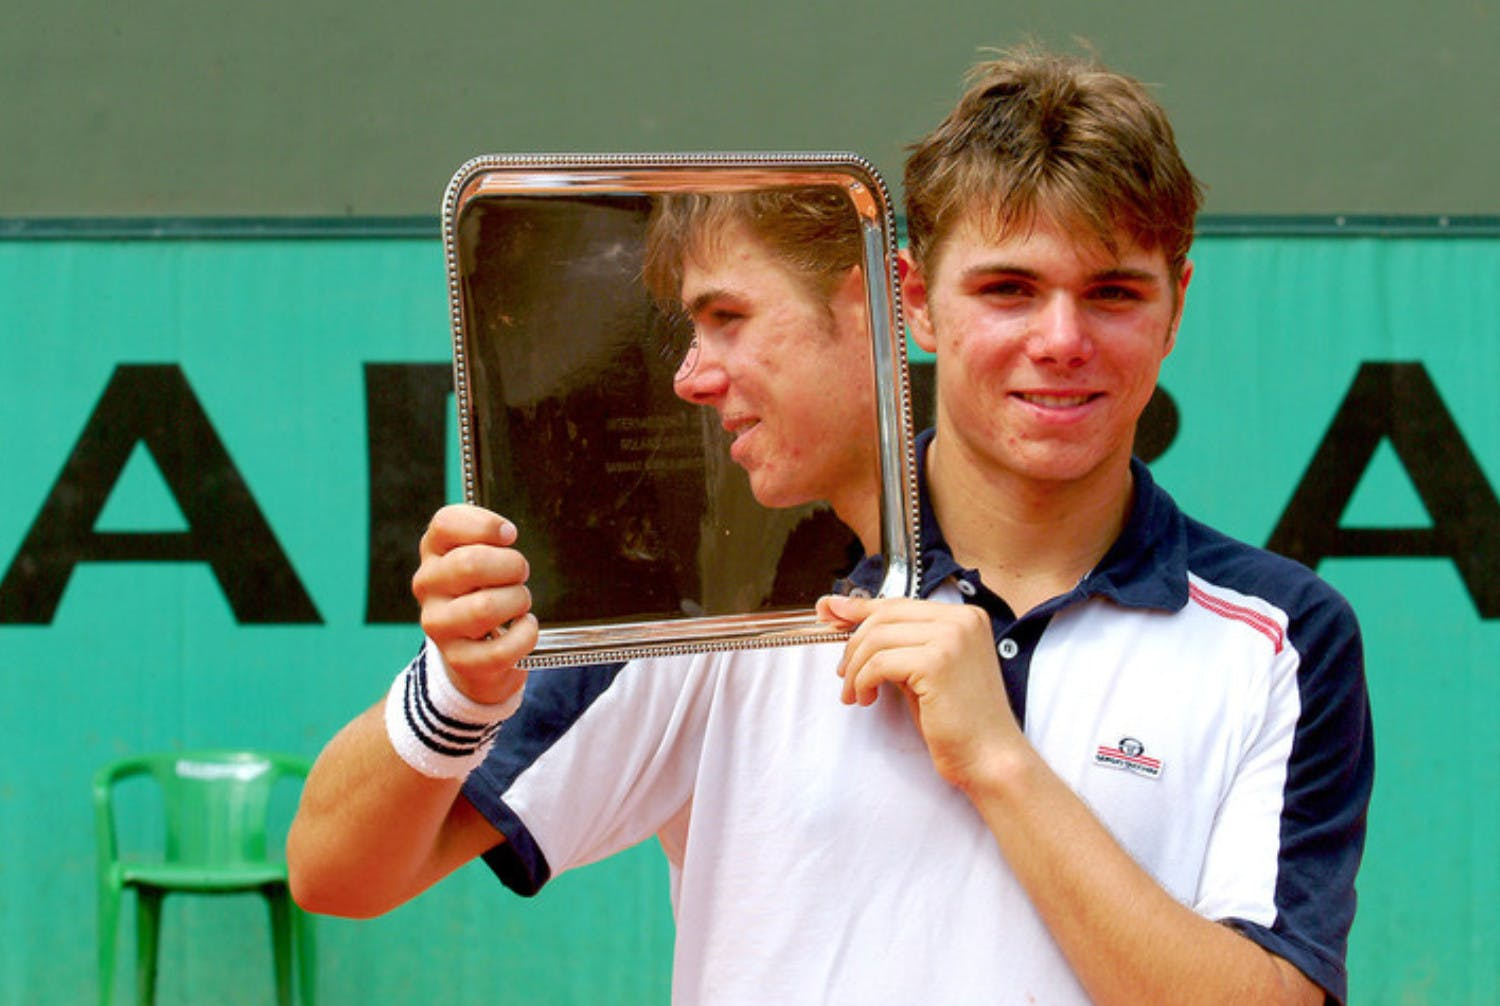 Stan Wawrinka vainqueur junior Roland-Garros 2003 boy's junior champ.